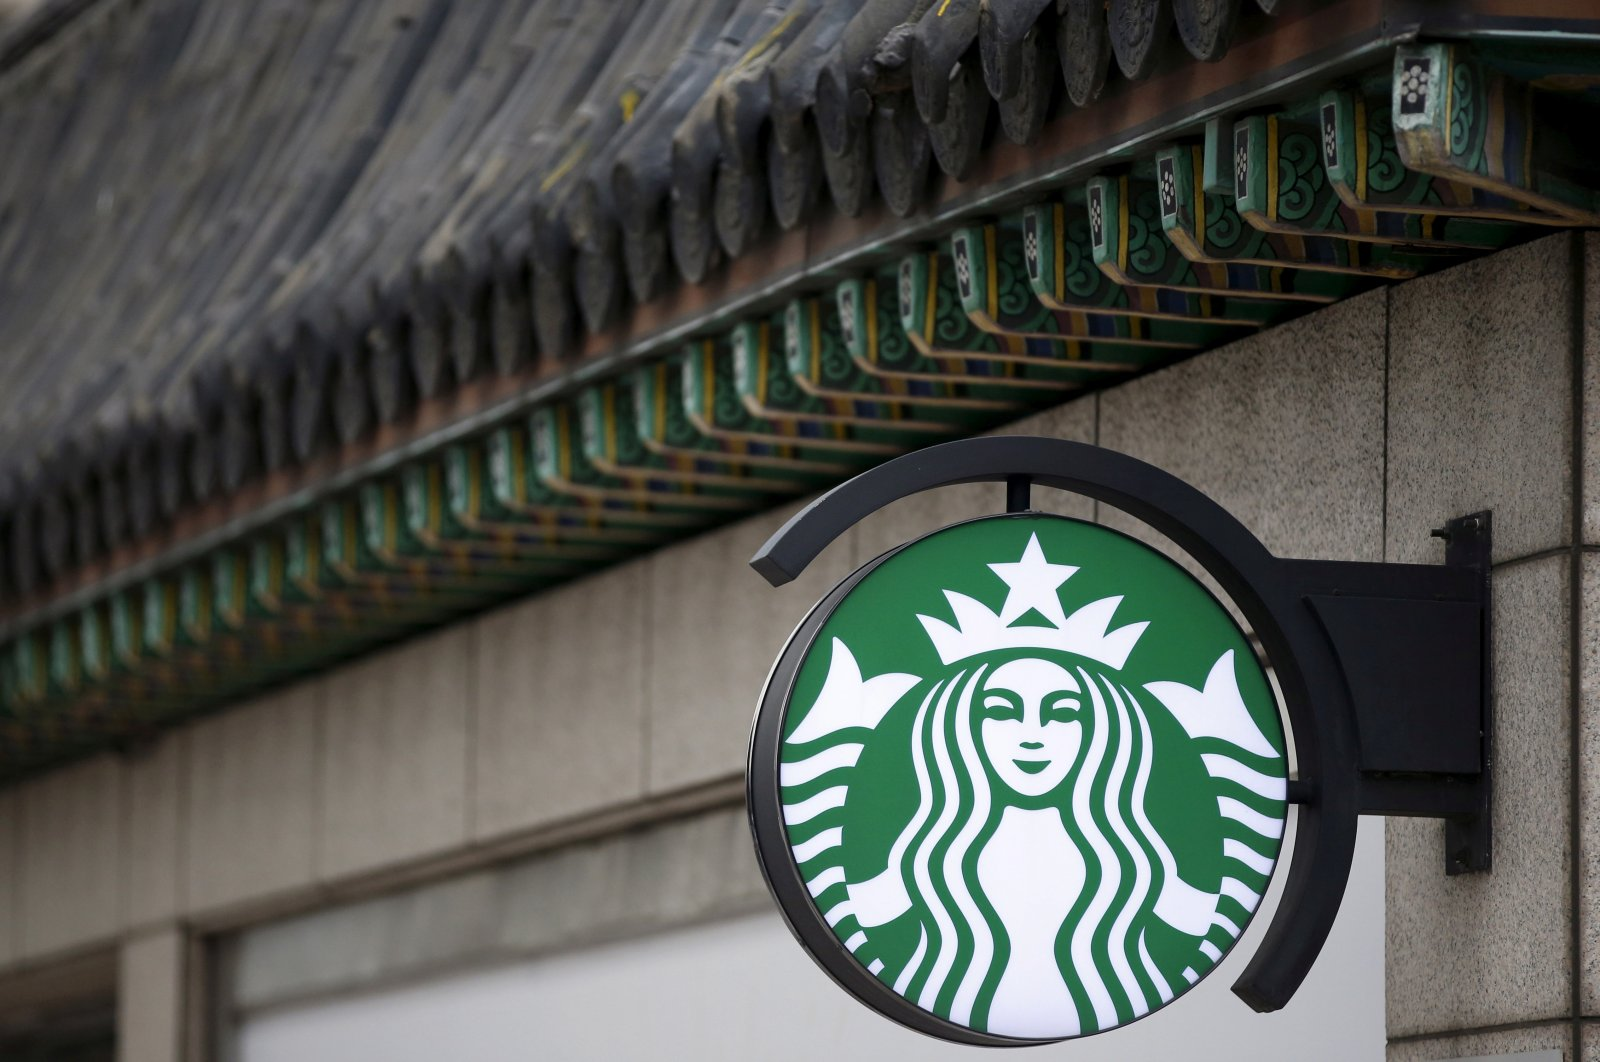 A Starbucks logo is seen at a Starbucks coffee shop in Seoul, South Korea, March 7, 2016. (Reuters Photo)